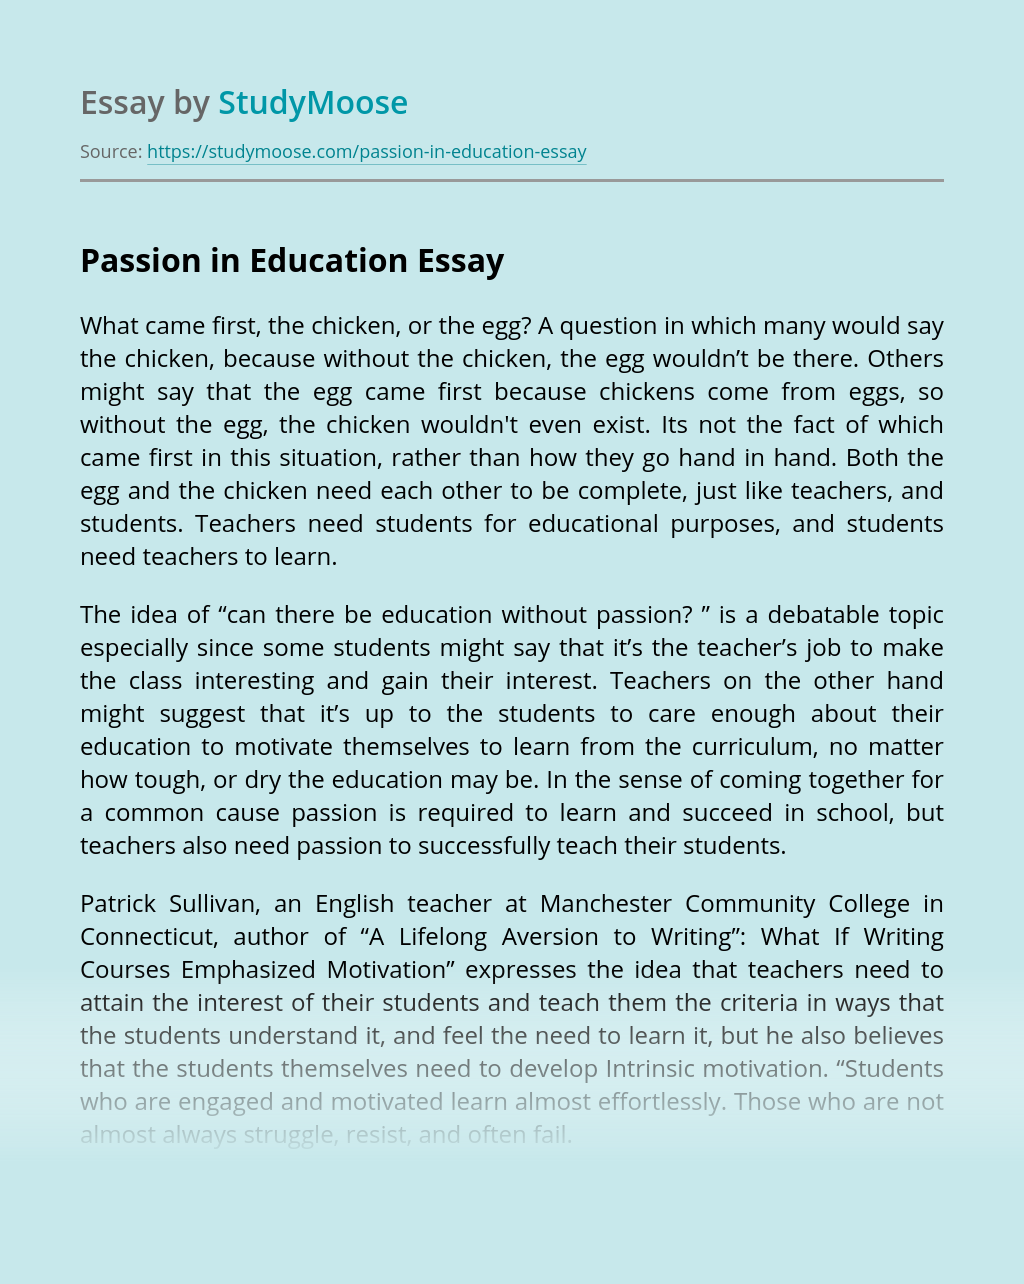 Passion in Education